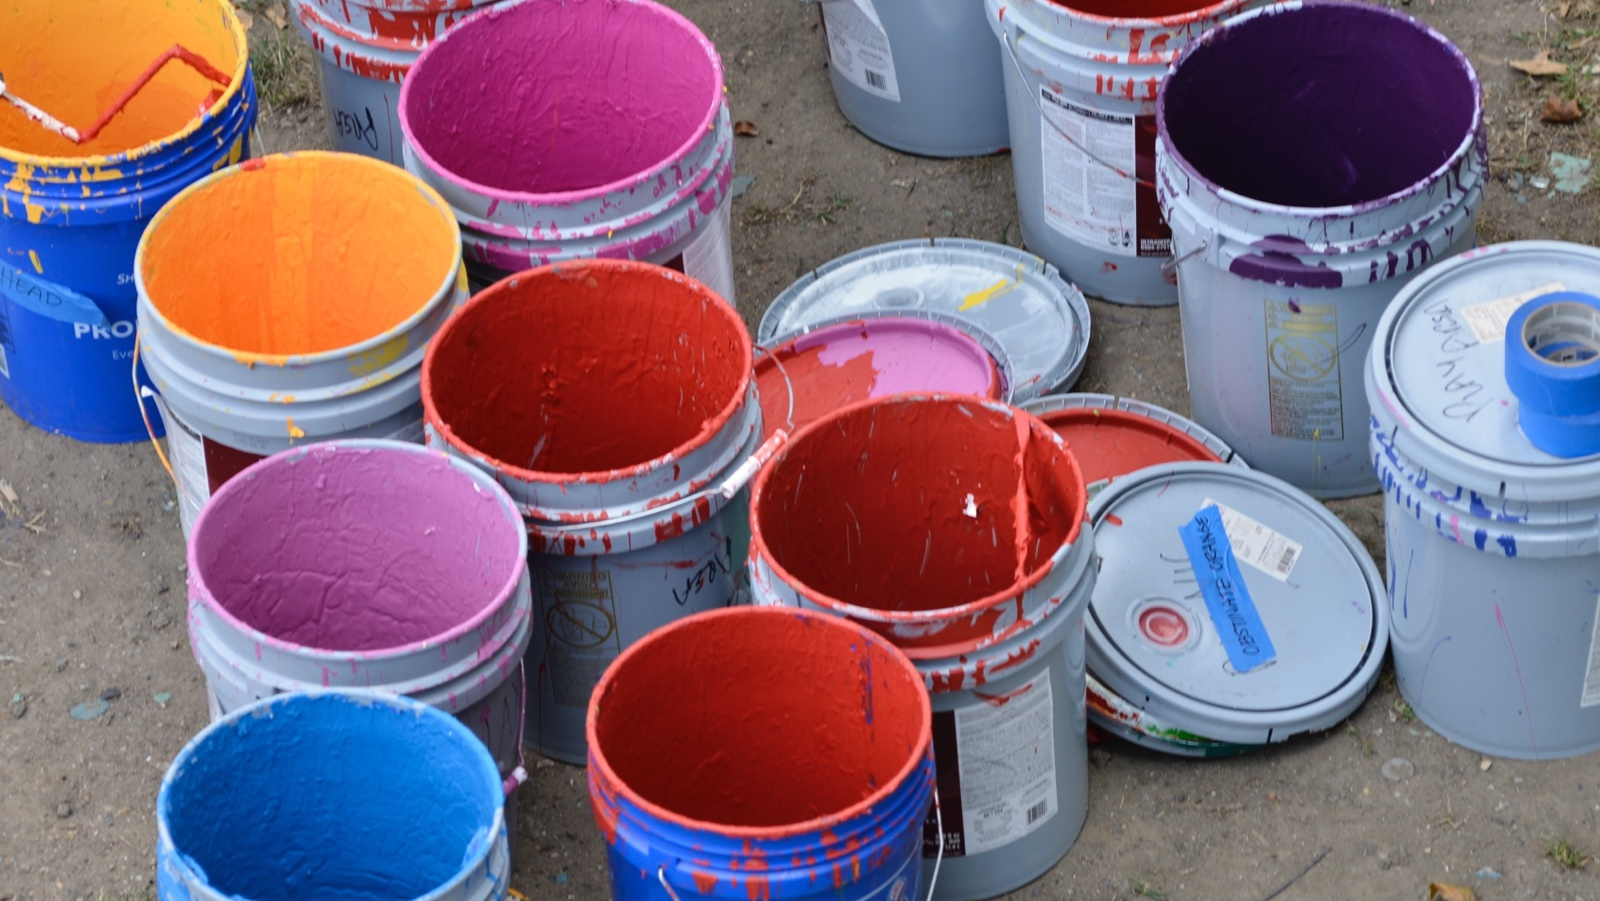 Buckets of paint used for  painting 'Rhythm & Hues' at Eakins Oval. (Bastiaan Slabbers for NewsWorks)